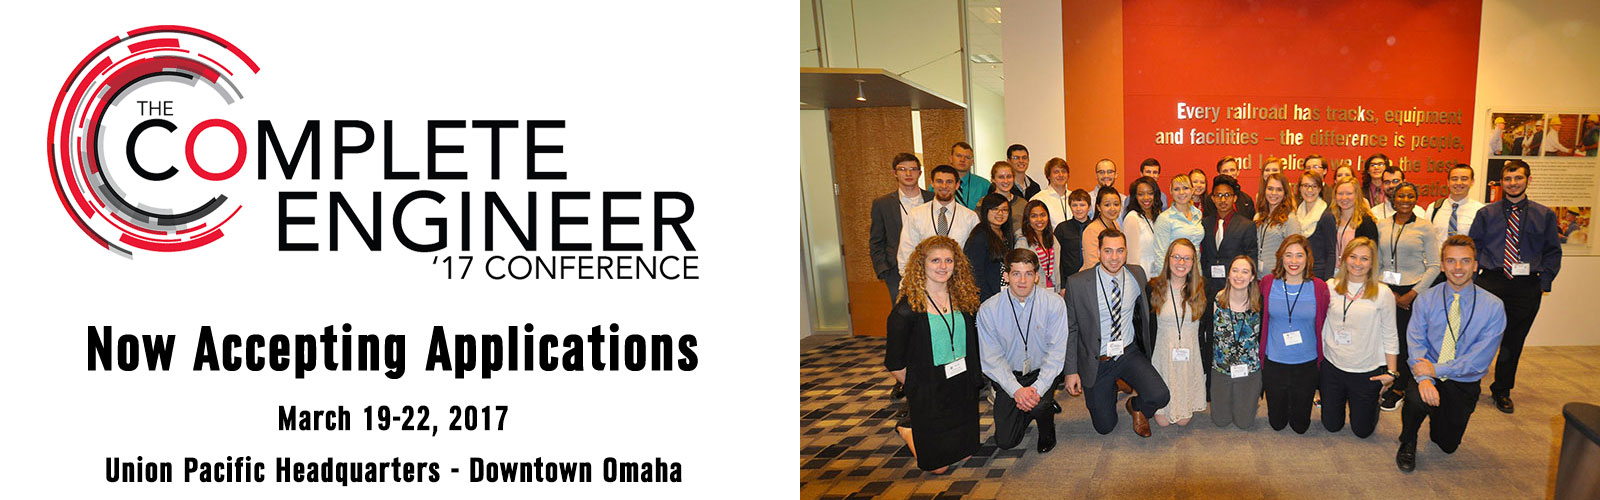 Apply Now for the 2017 Complete Engineer Conference: March 19-22, 2017, Union Pacific Headquarters in Downtown Omaha